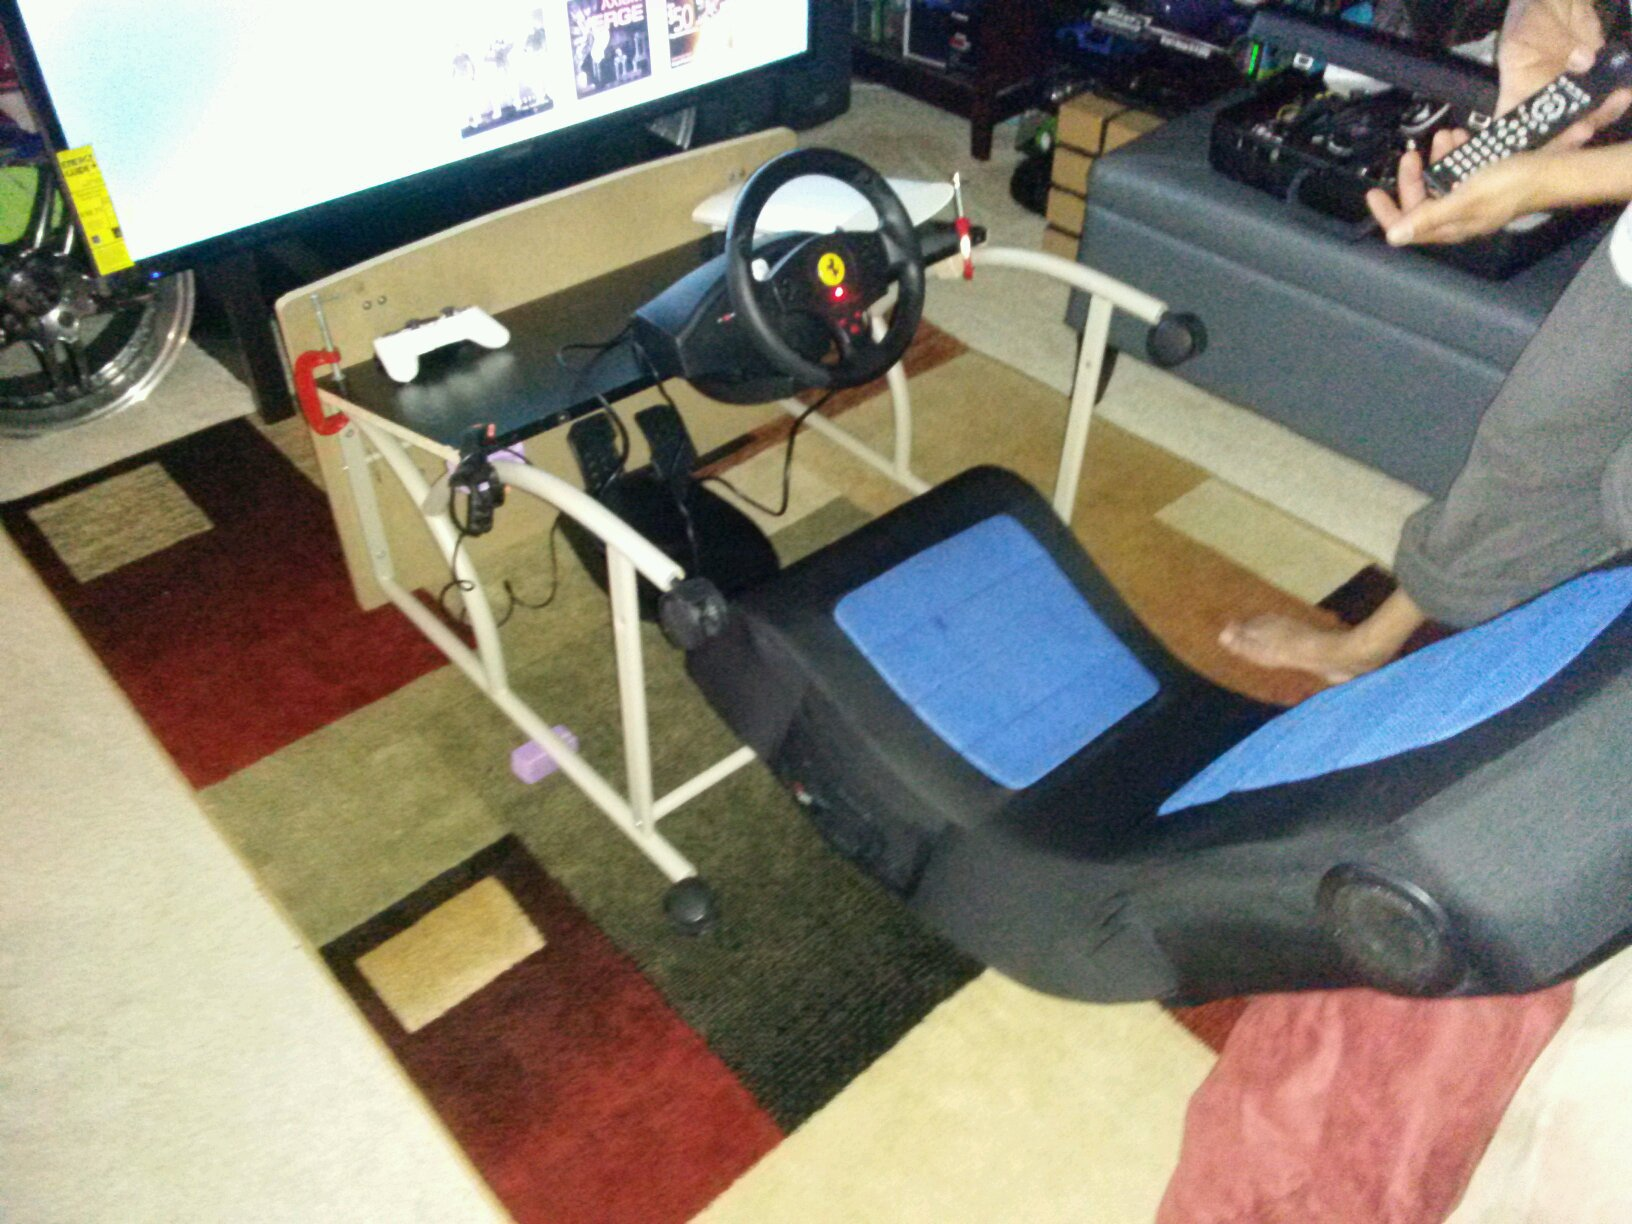 racing simulator chair plans costco dining covers how to build your very own kick ass this my setup for now until dad and i have time a better